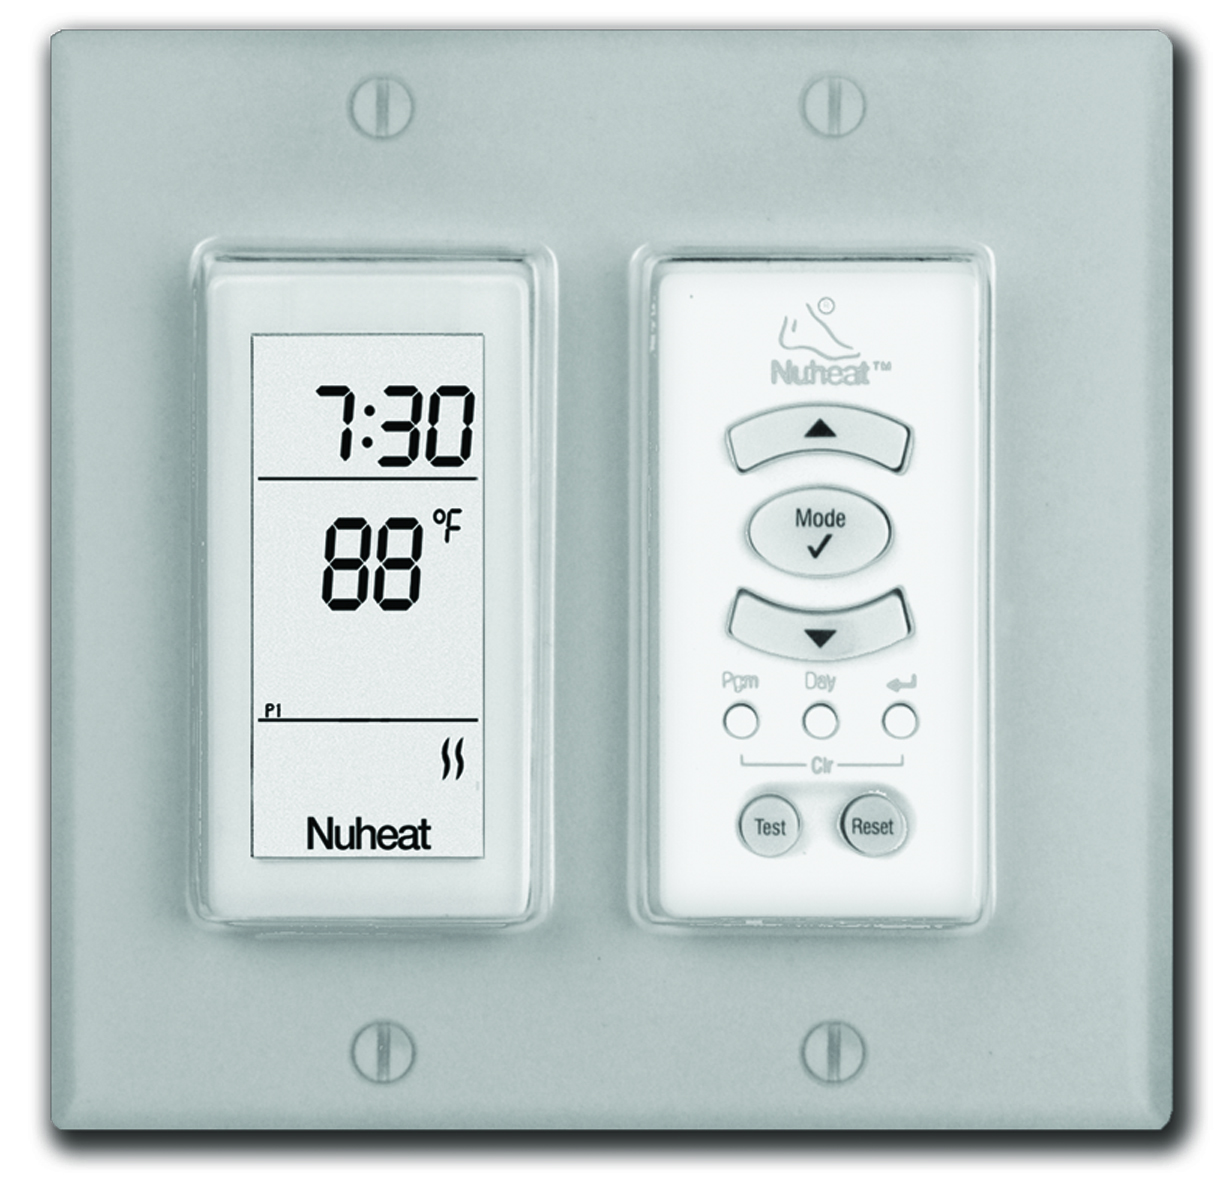 nuheat solo wiring diagram man truck can bus warm tiles thermostat troubleshooting 28 images